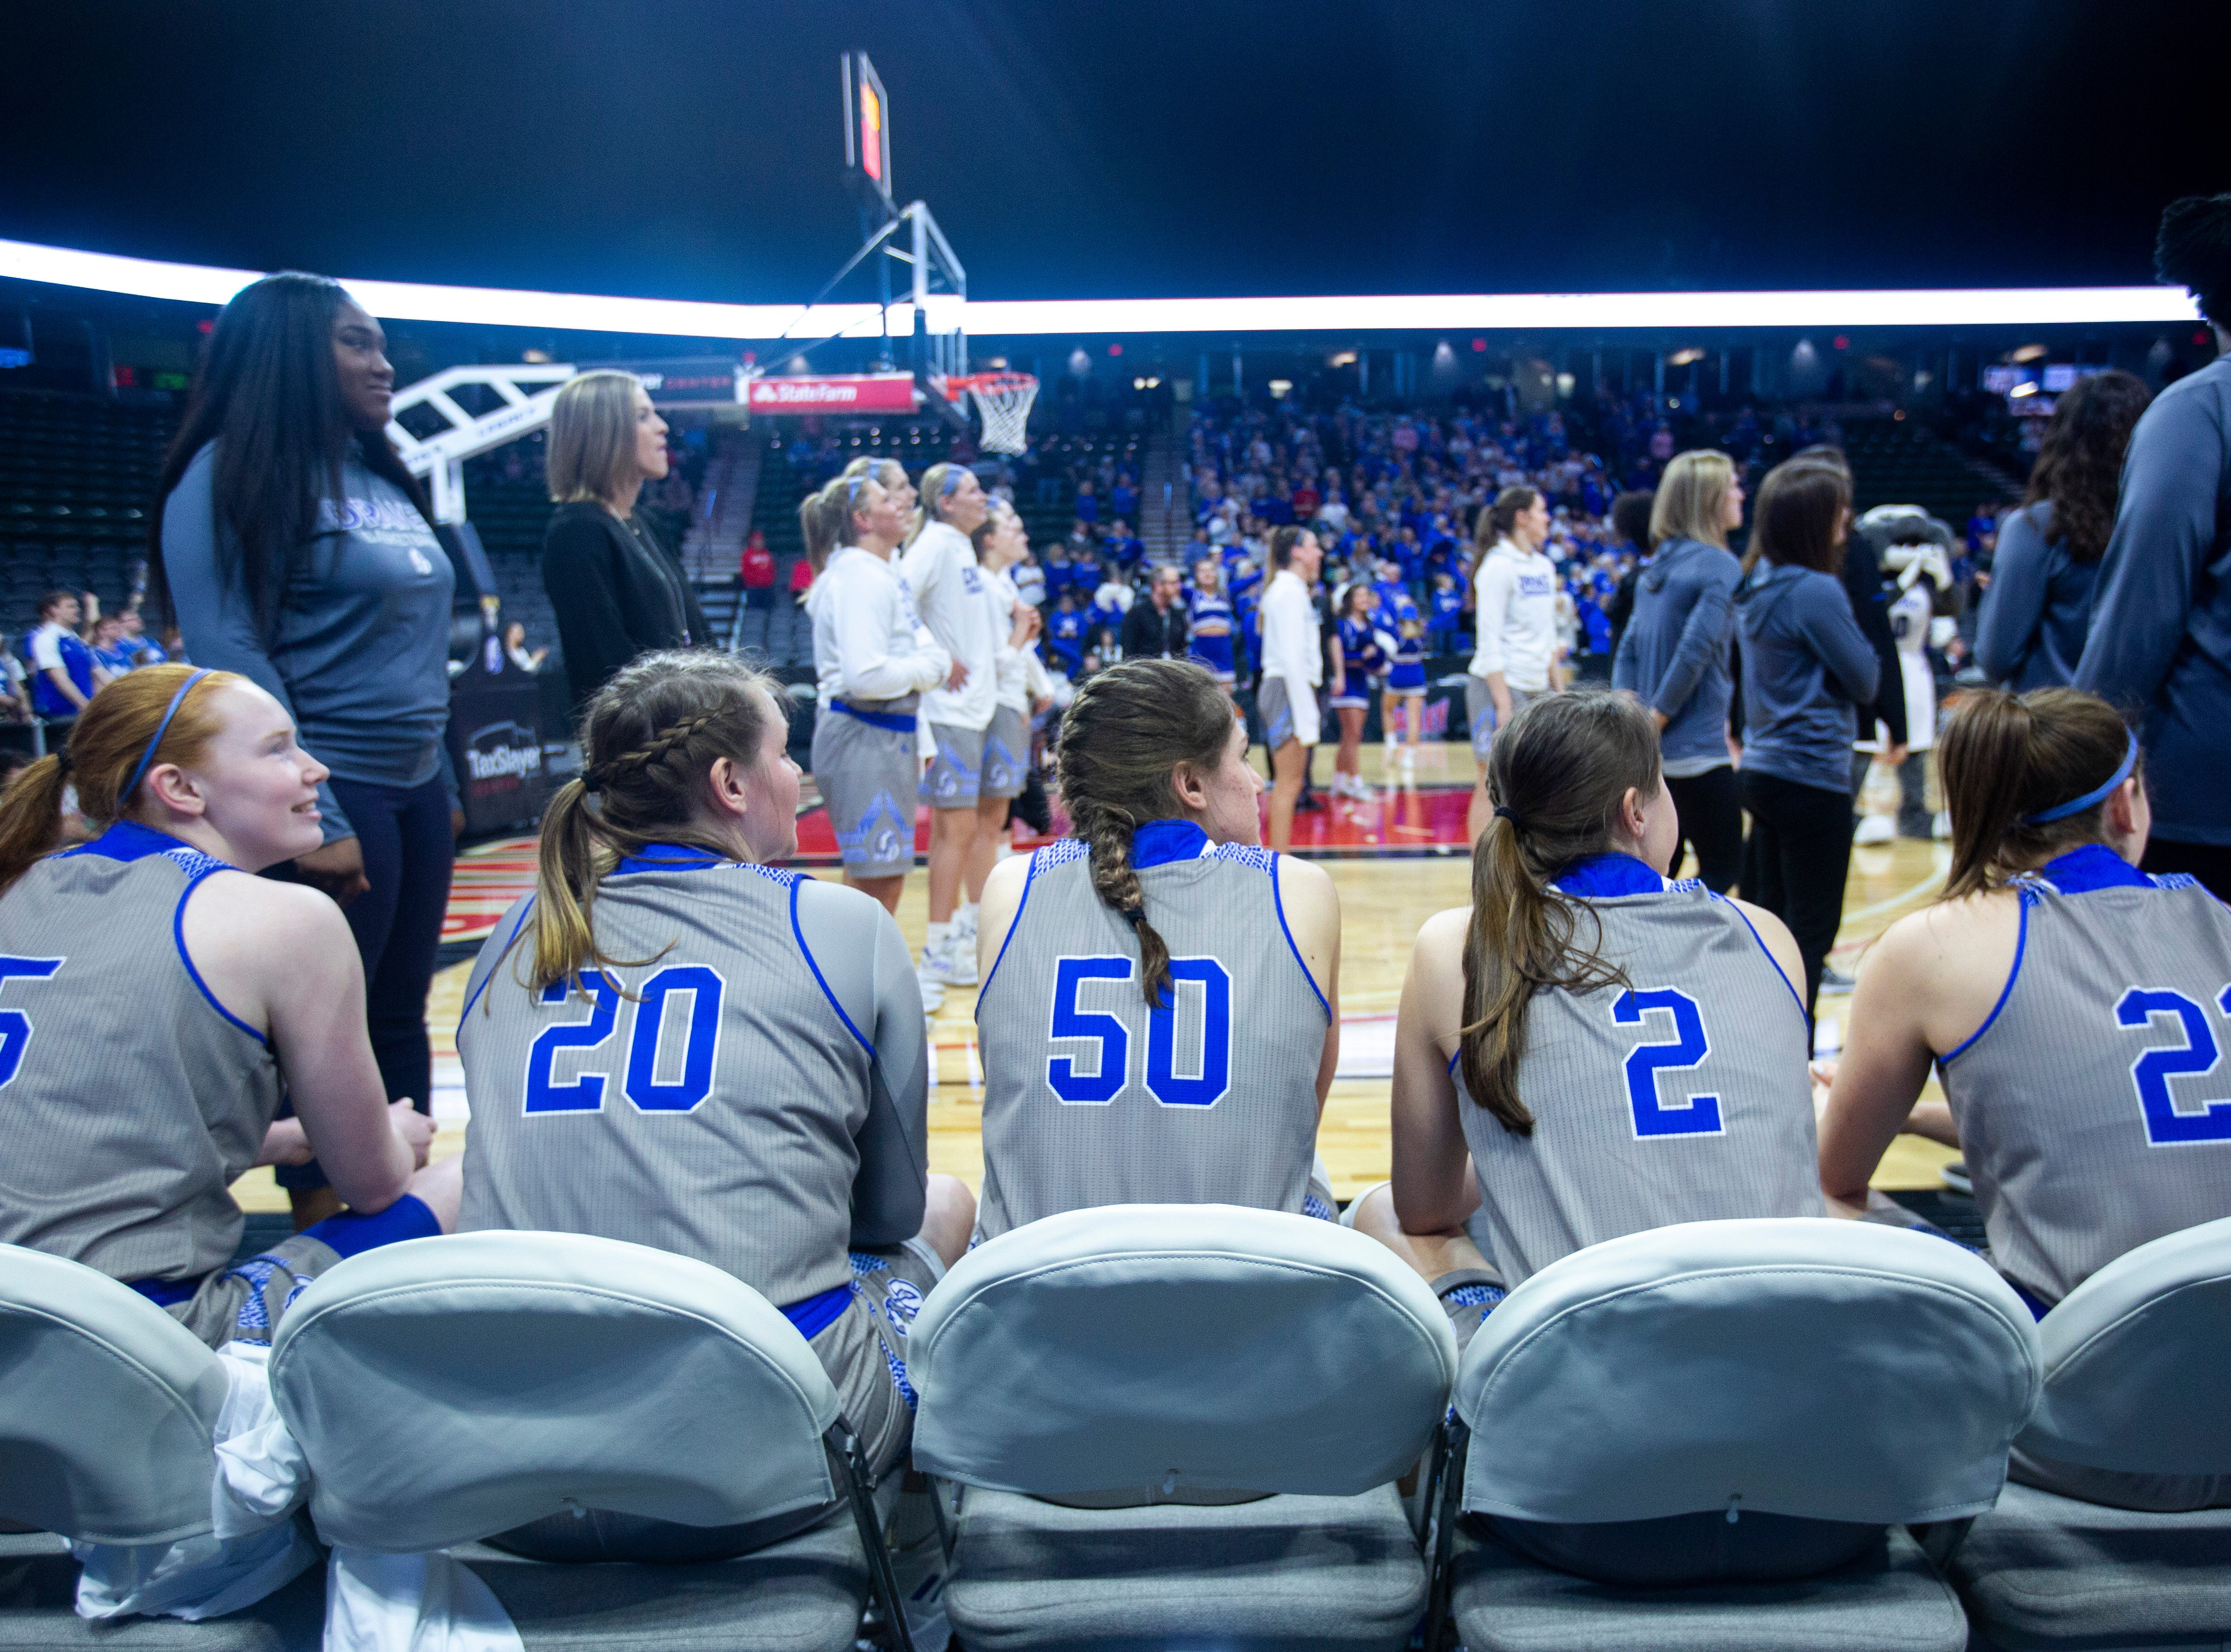 Drake Bulldogs players wait to be introduced during a NCAA Missouri Valley Conference women's basketball quarterfinal tournament game, Friday, March 15, 2019, at the TaxSlayer Center in Moline, Illinois.